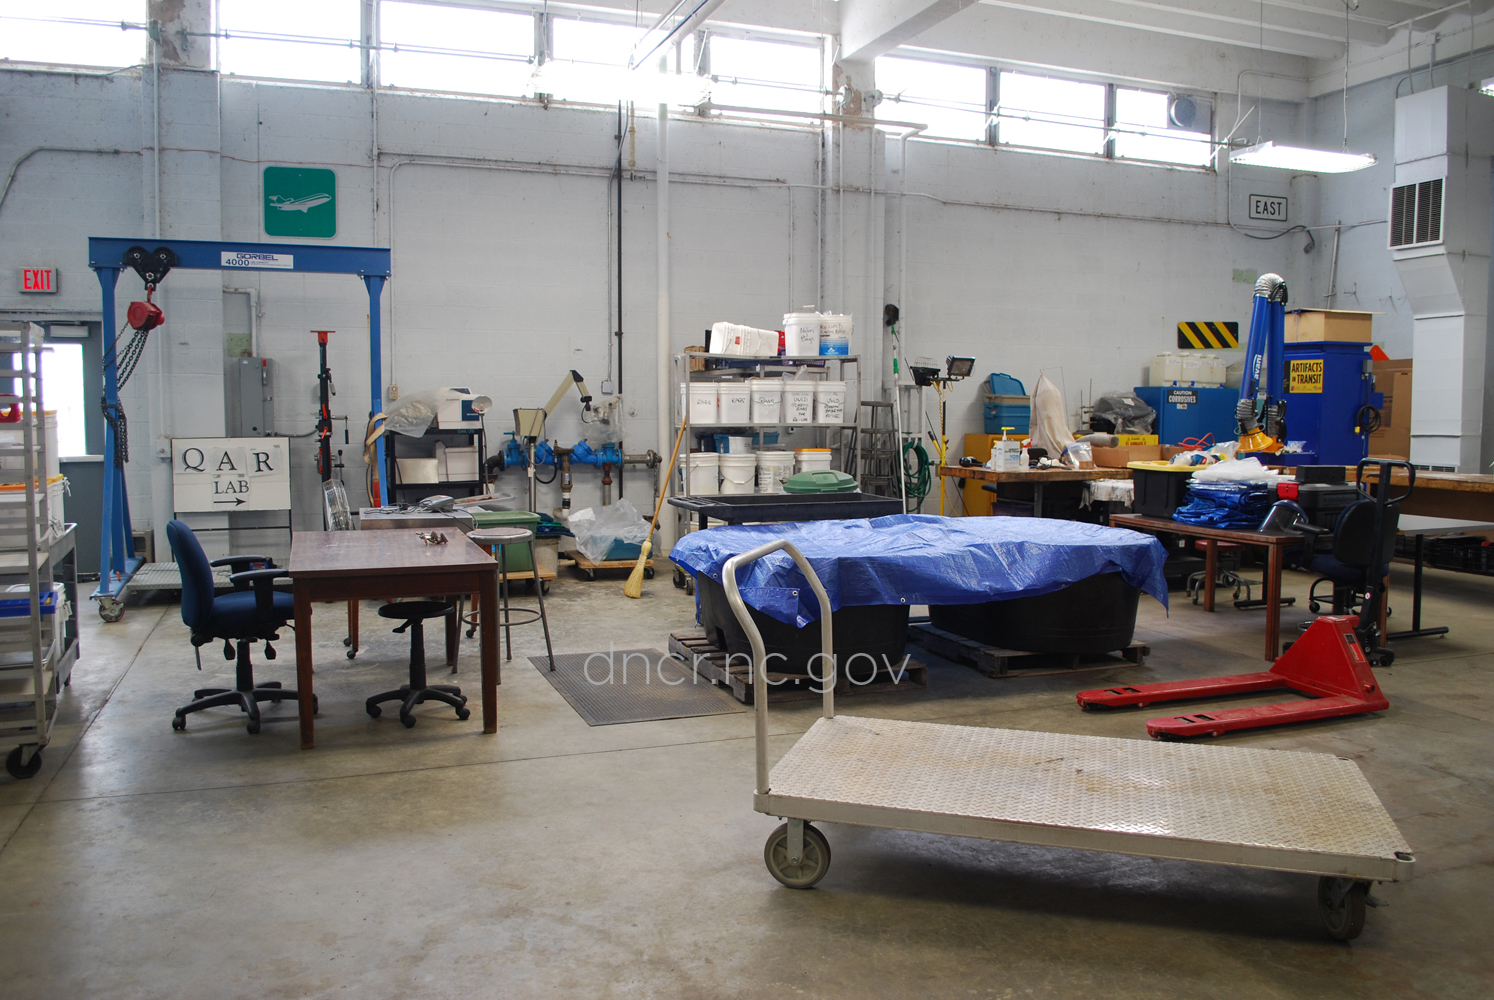 A view of the lab where artifacts from Blackbeard's ship are conserved